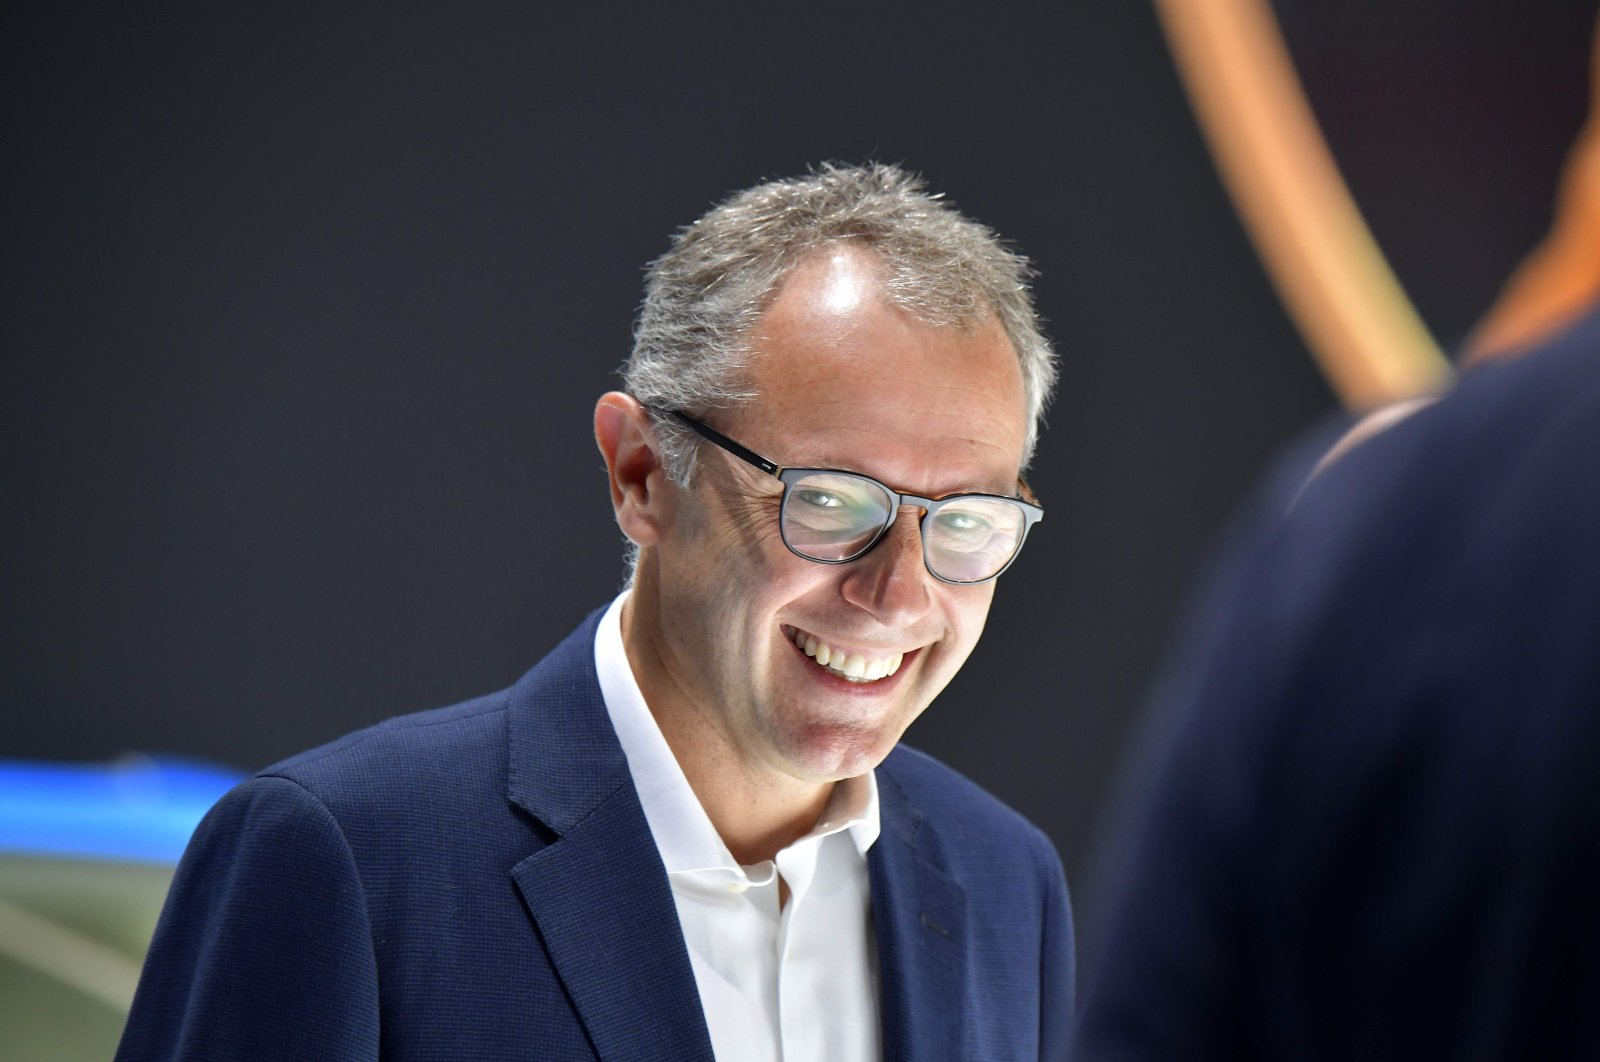 Lamborghini Chairman and CEO Stefano Domenicali during the IAA car show in Frankfurt, Germany, Sept. 10, 2019. (AFP Photo)